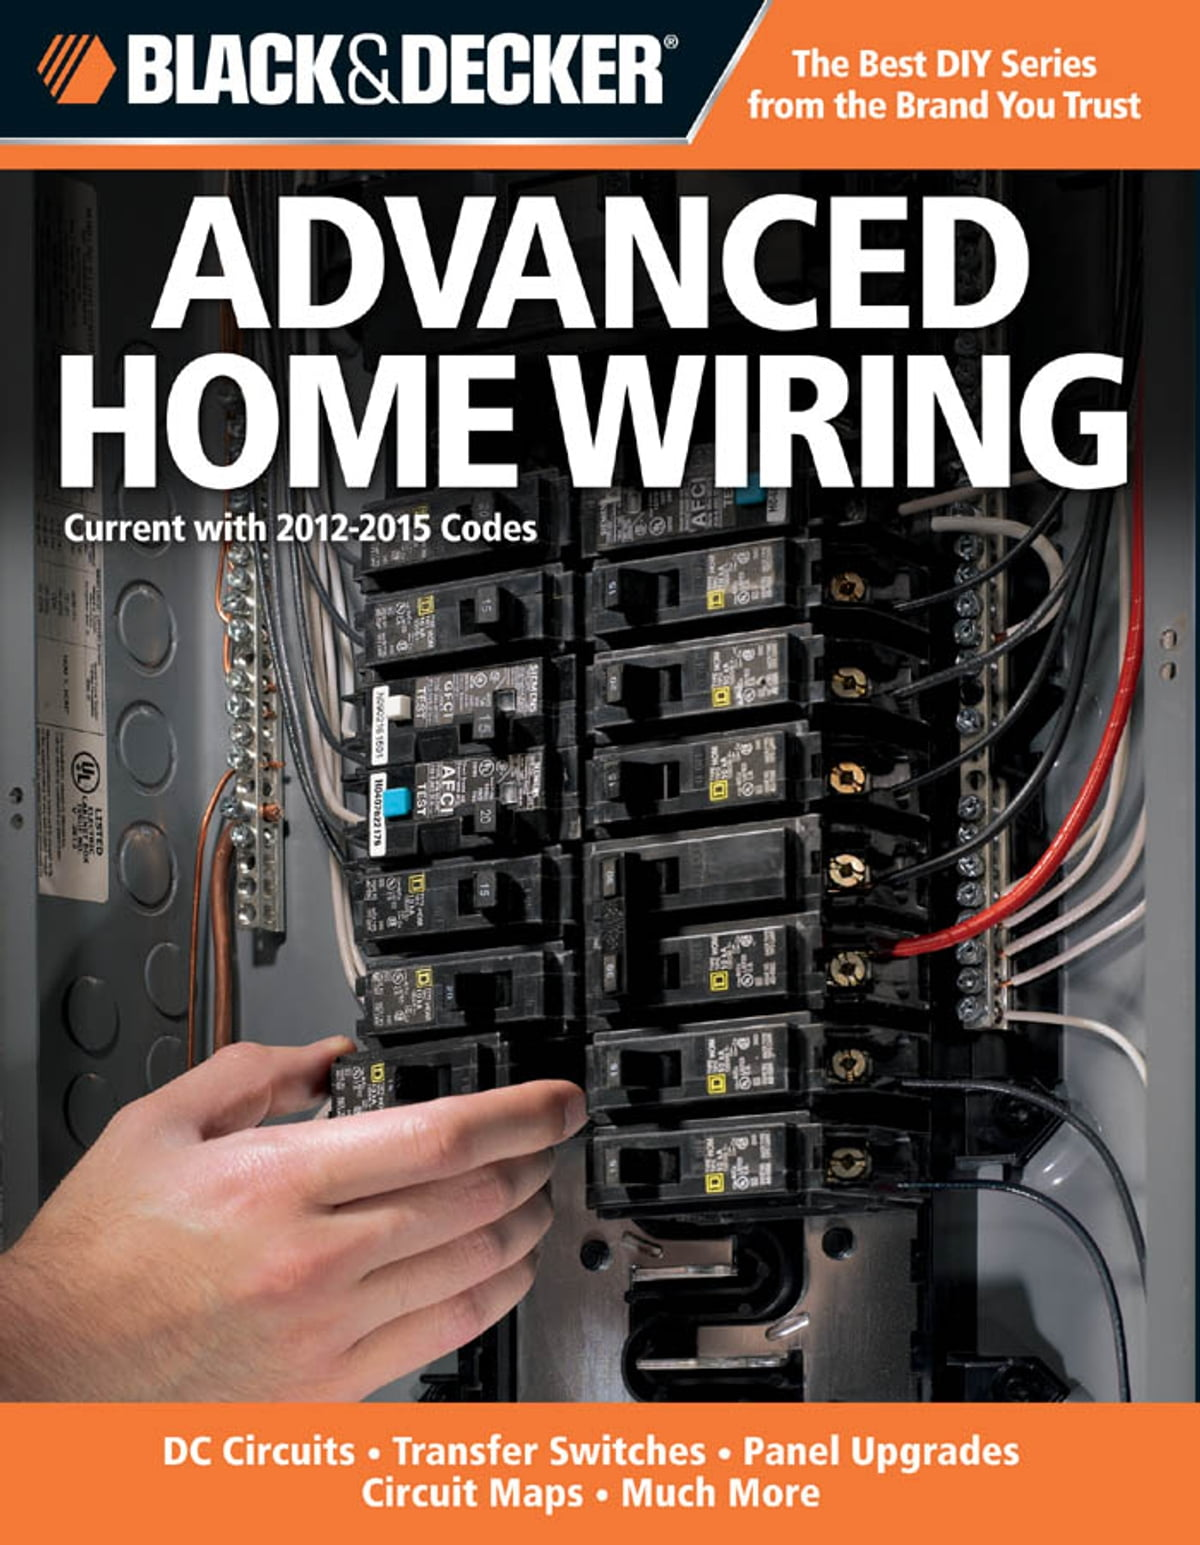 Custom Auto Wiring Electrical Hp1545 Matt Strong Wire Center Automations Gt Relay Circuits Latching Ac Solid State L14365 Black Decker Advanced Home Updated 3rd Edition Dc Rh Kobo Com